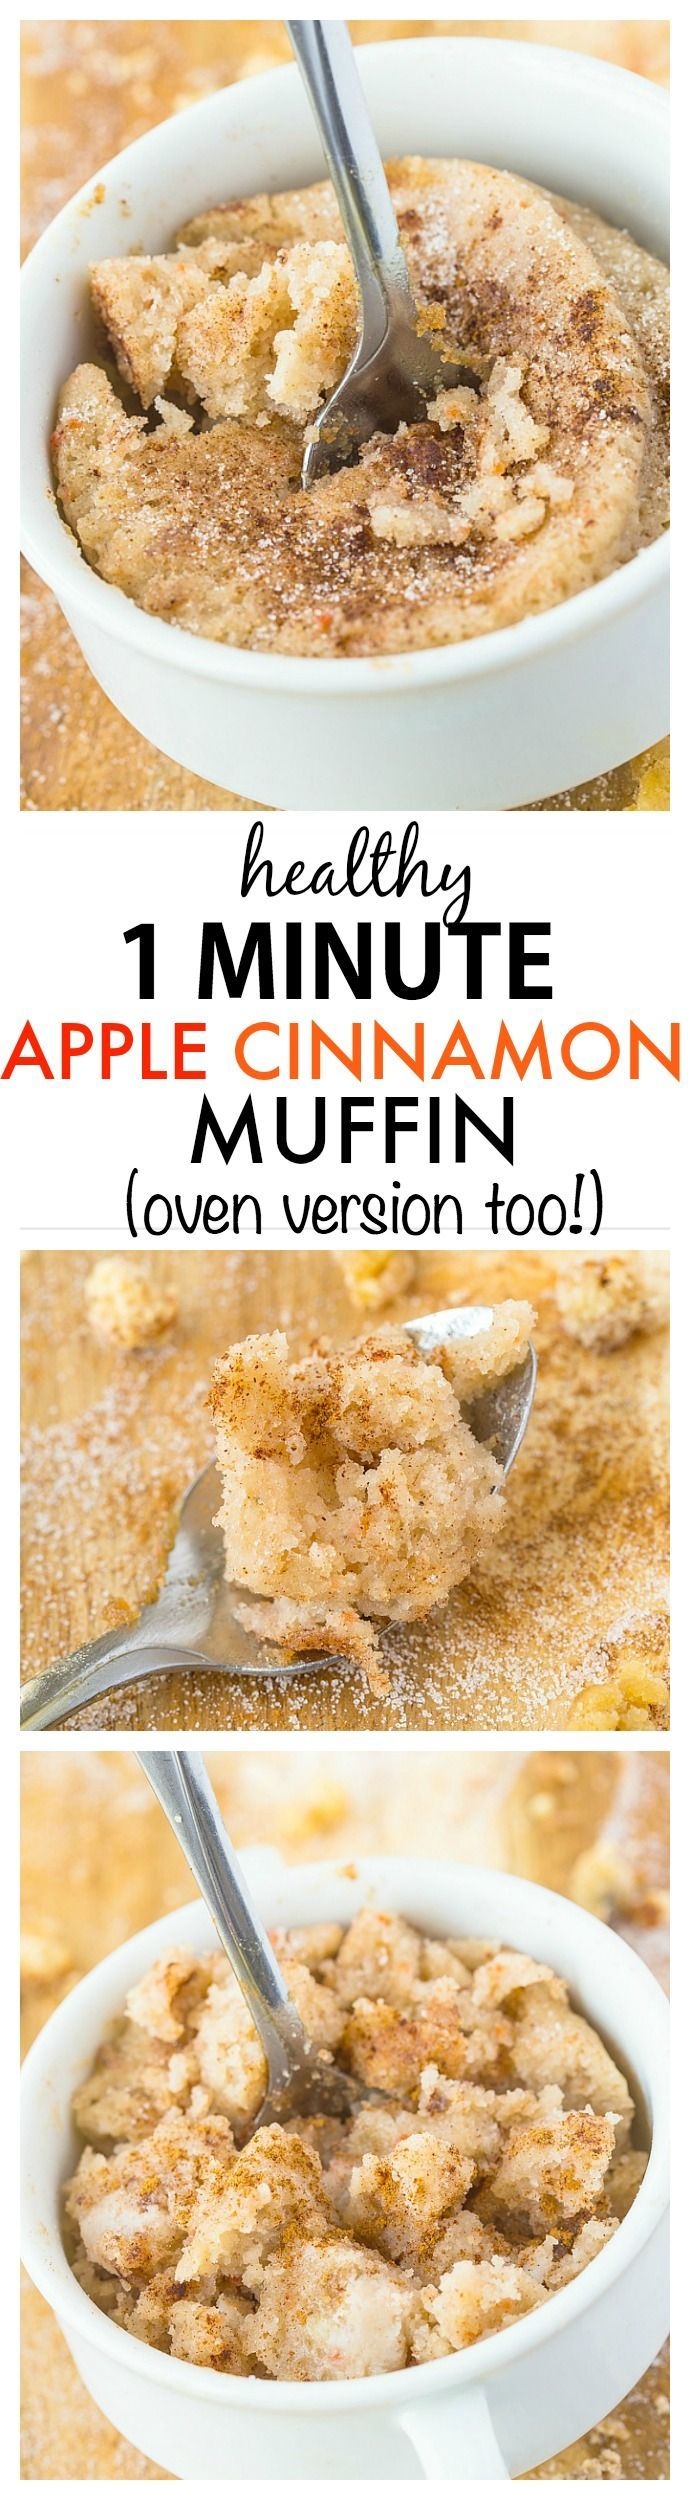 Healthy 1 Minute Apple Cinnamon Muffin recipe- A quick and easy one ...